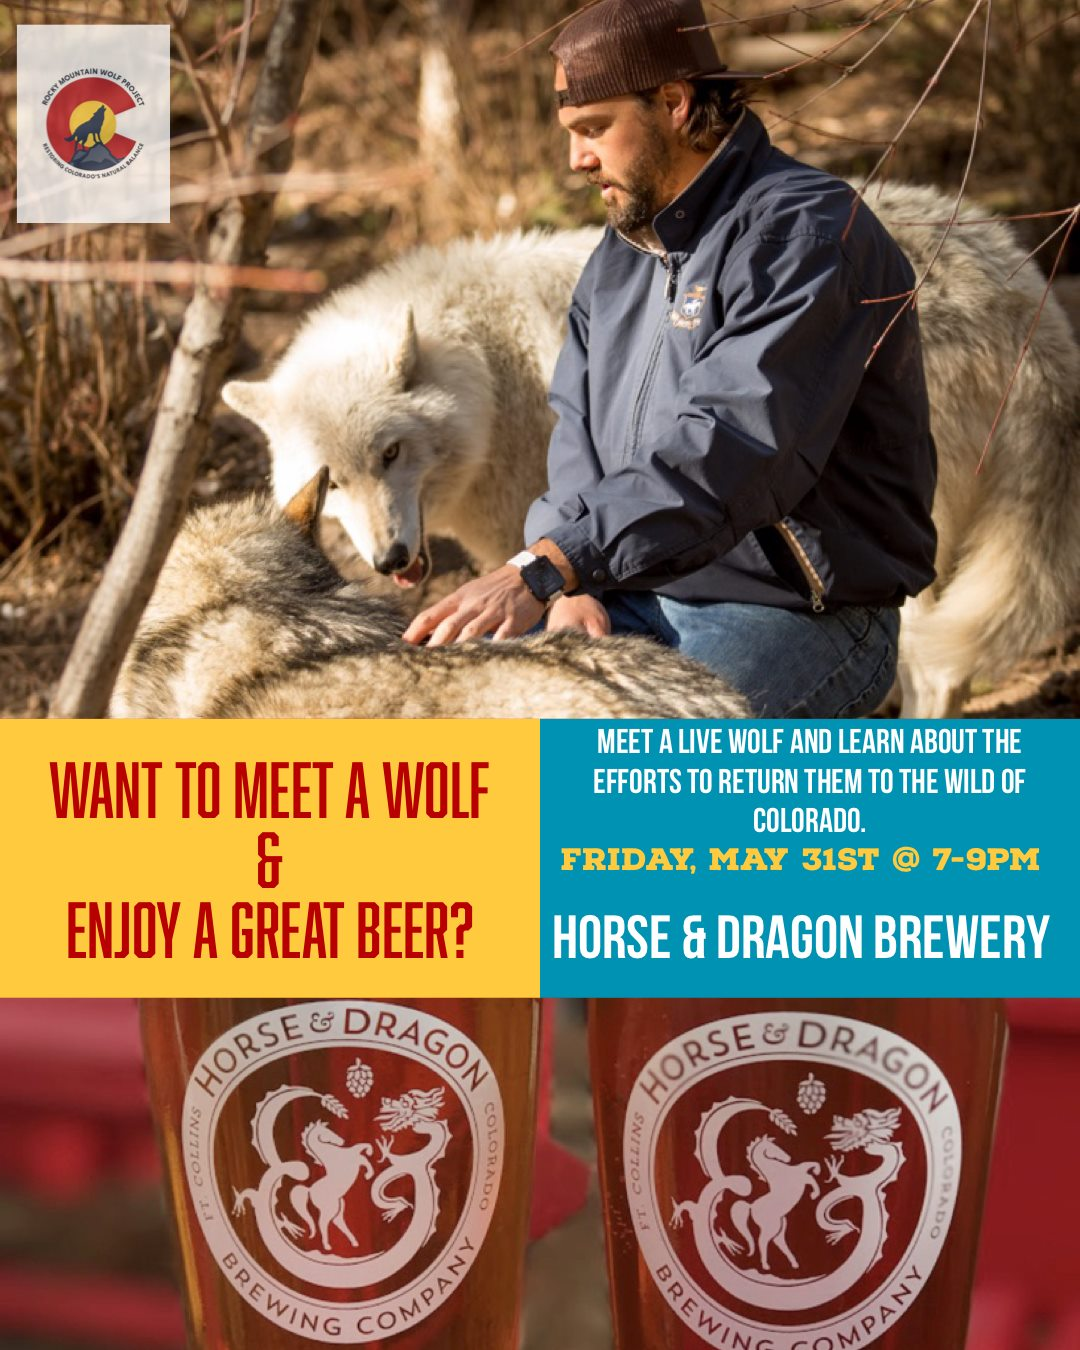 Wolves of the Rockies along with The Rocky Mountain Wolf Project and Wolf Action Fund with be at the Horse and Dragon Brewery Friday May 31st from 7-9 pm. We are excited to share a special brew made specifically for this occasion with you!  So come on down to Fort Collins, enjoy a beer, learn about wolves, the efforts to bring them back to Colorado and help us raise a little money to make it all happen.  I'm excited to meet an speak with you all —   See you then!  Kim